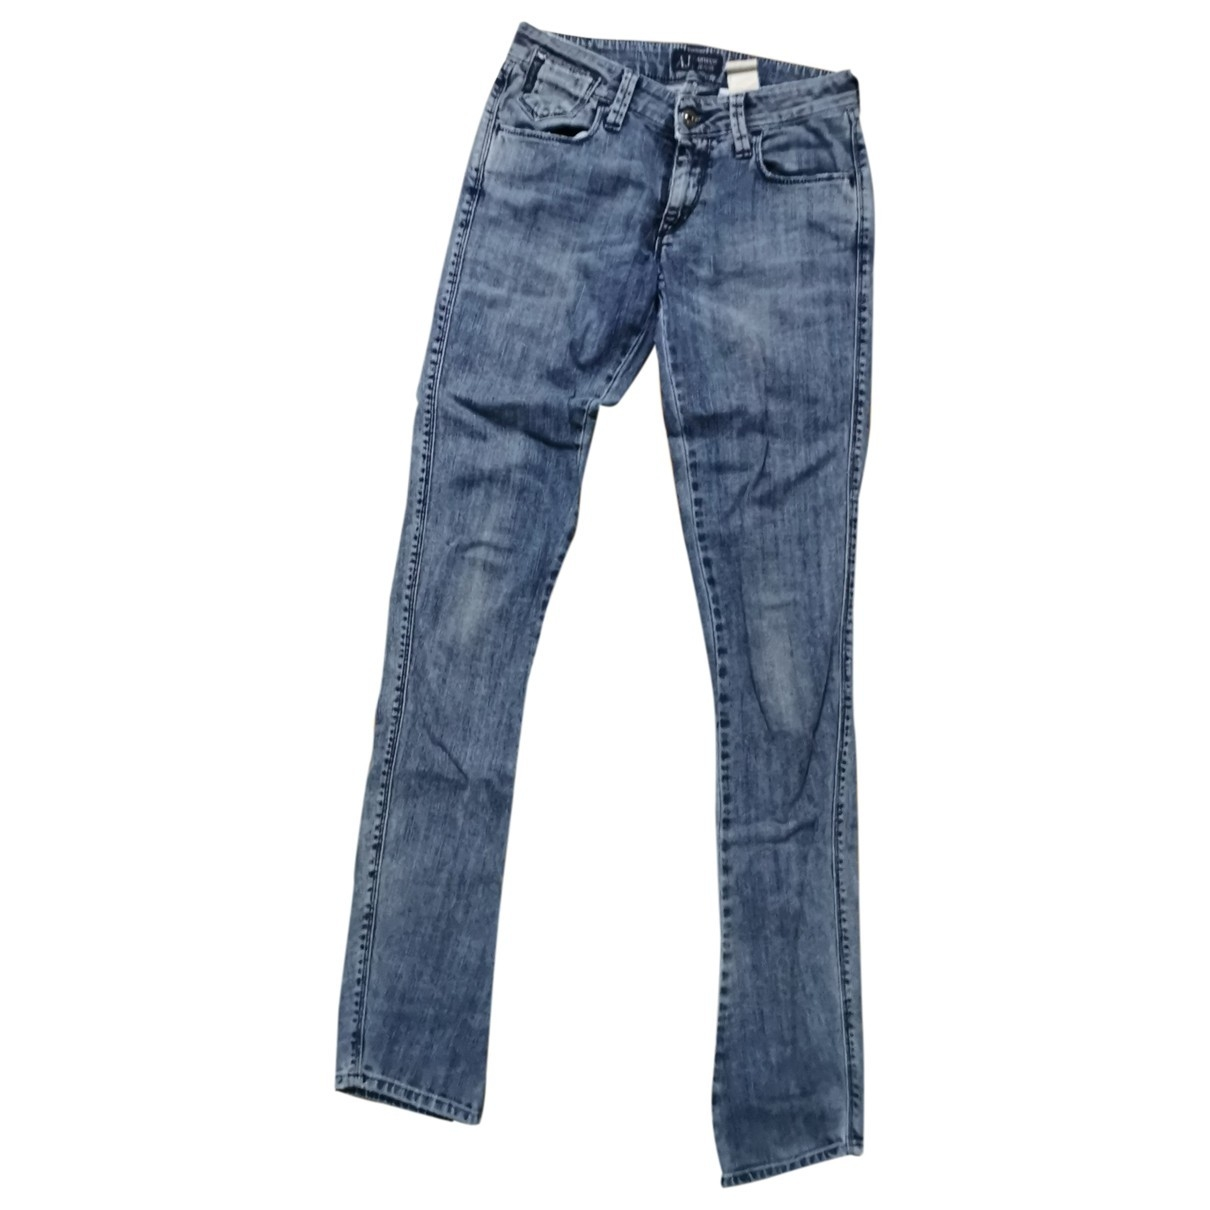 Armani Jeans \N Cotton - elasthane Jeans for Women 26 US